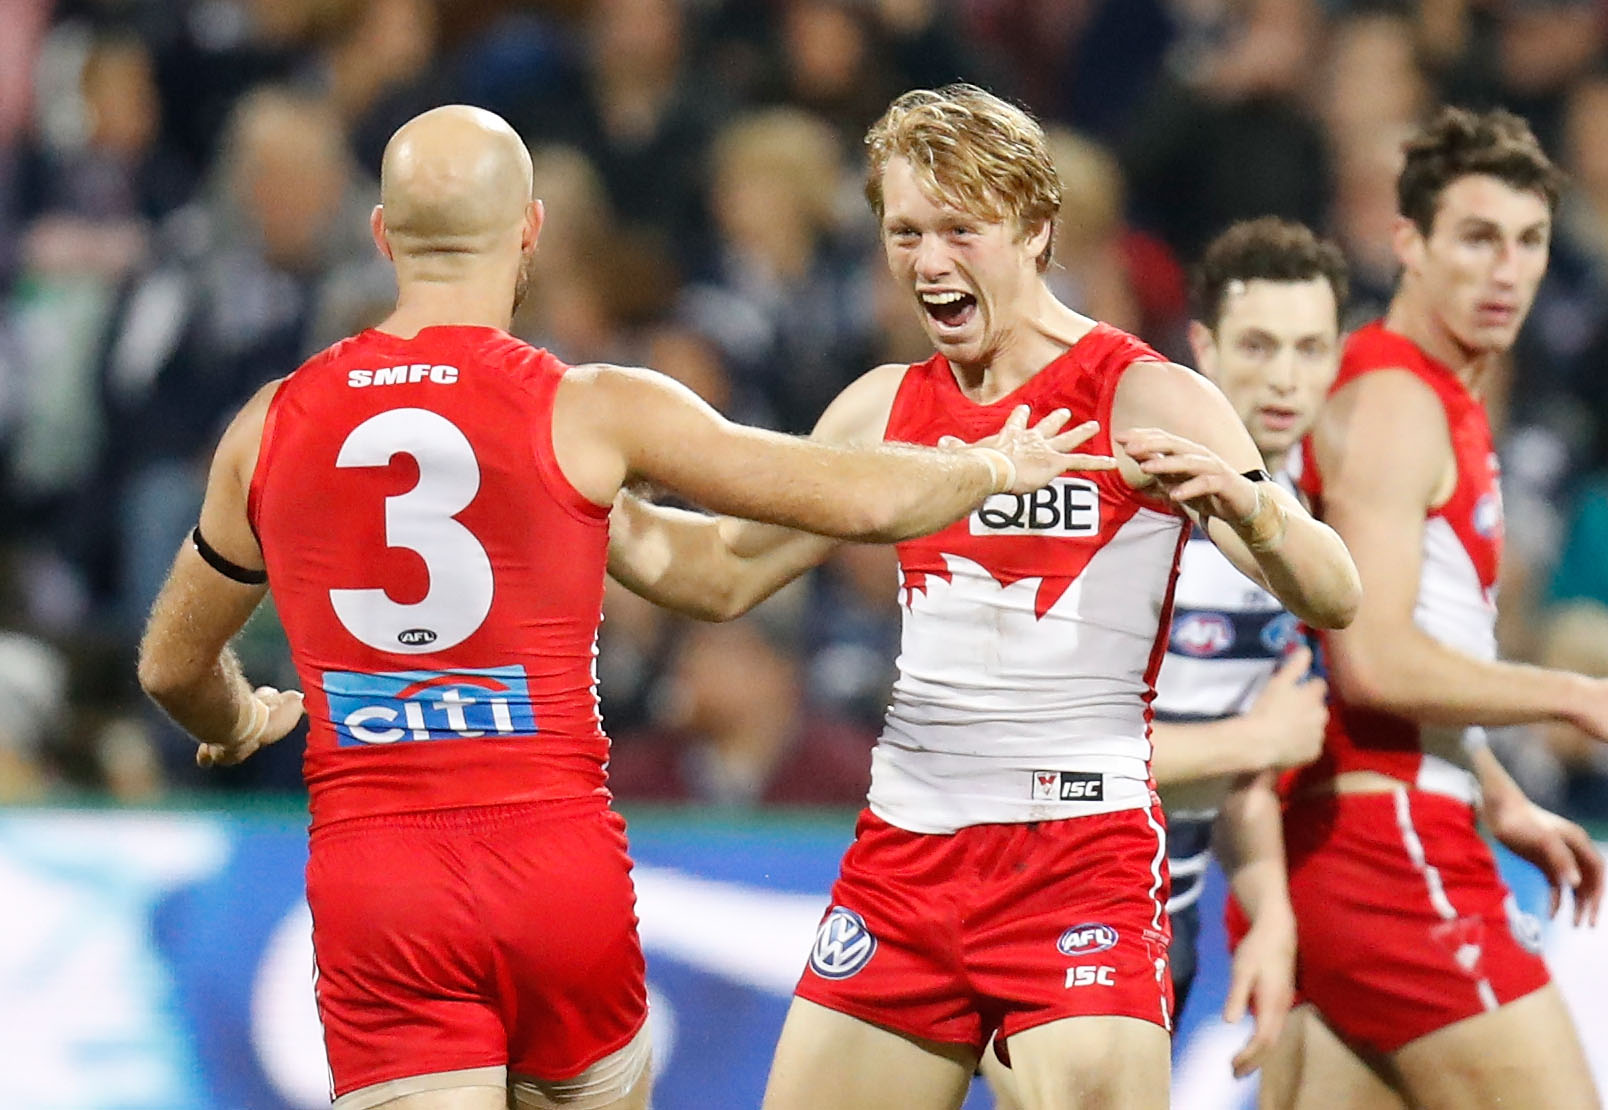 Jarrad McVeigh (left) and Callum Mills of the Swans celebrate during the 2016 AFL Round 16 match between the Geelong Cats and the Sydney Swans at Simonds Stadium on July 8, 2016 in Geelong, Australia. (Photo by Michael Willson/AFL Media)